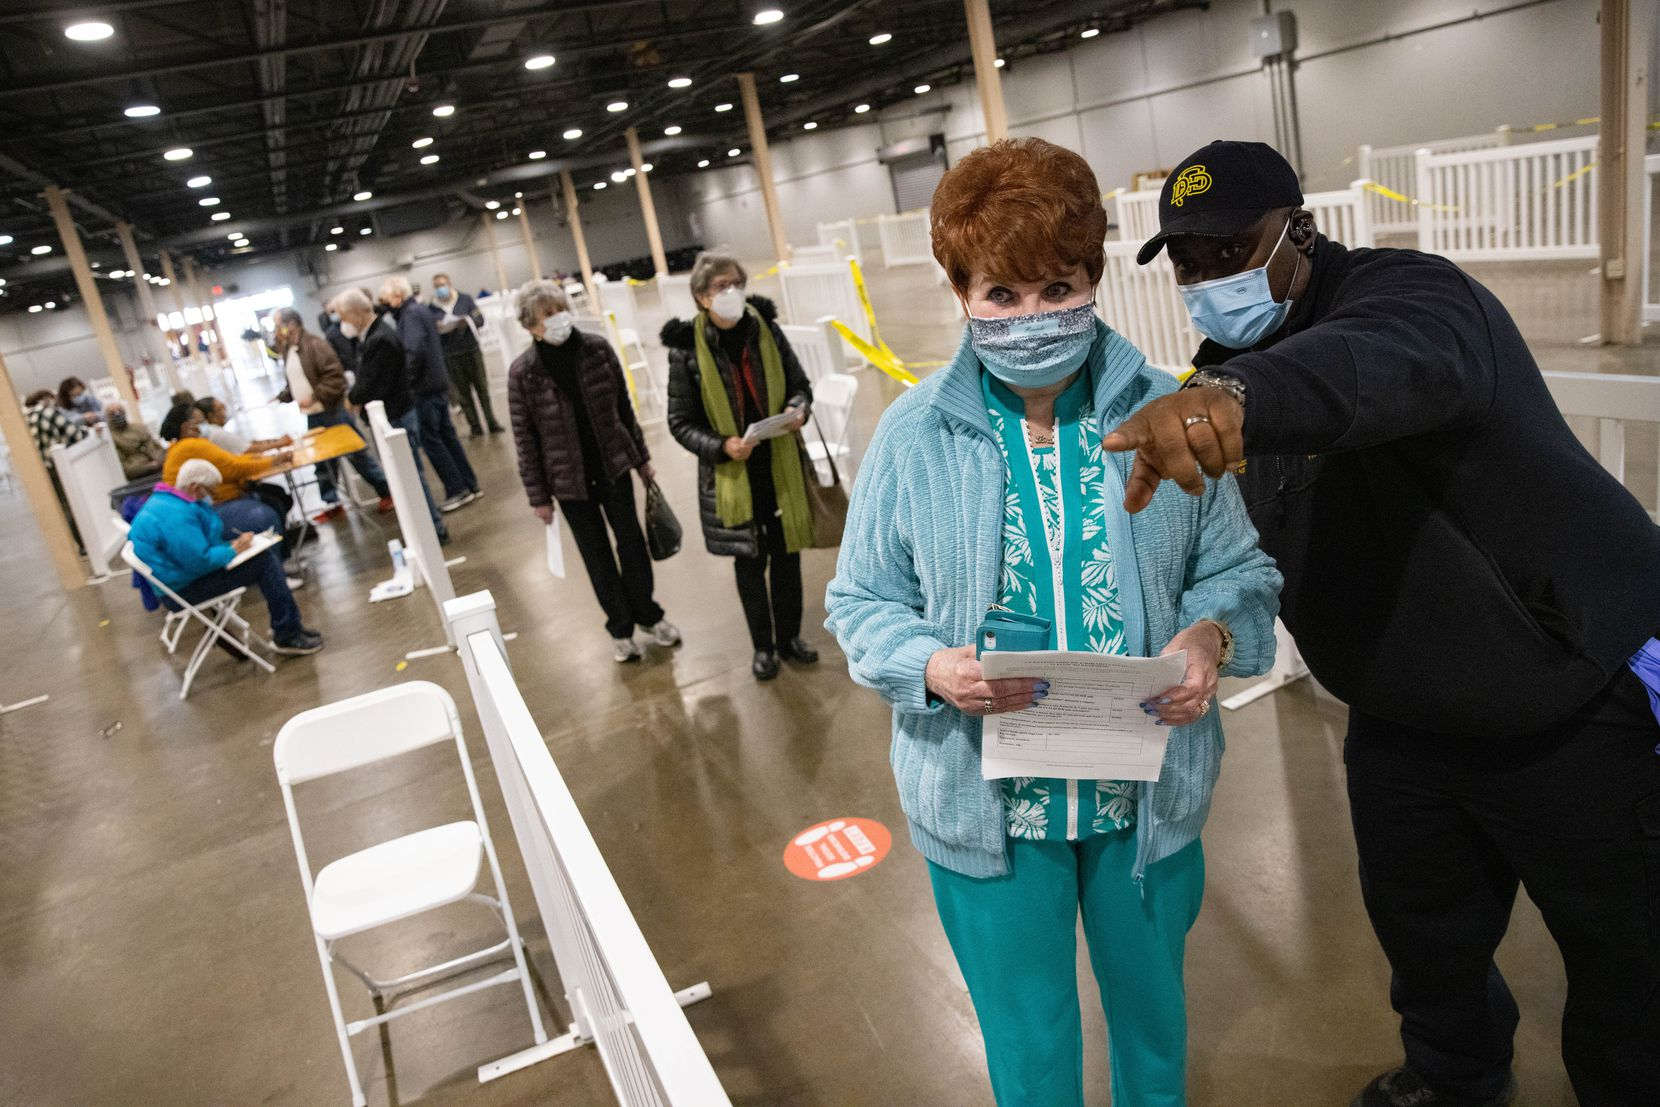 Lt. Clinton Page of Dallas Fire-Rescue instructs Brenda David, 75, where to wait for the COVID-19 vaccine after she verified her information at Fair Park in Dallas on Thursday, Jan. 14, 2021. David said she dressed in layers in case there was a long line to get inside.